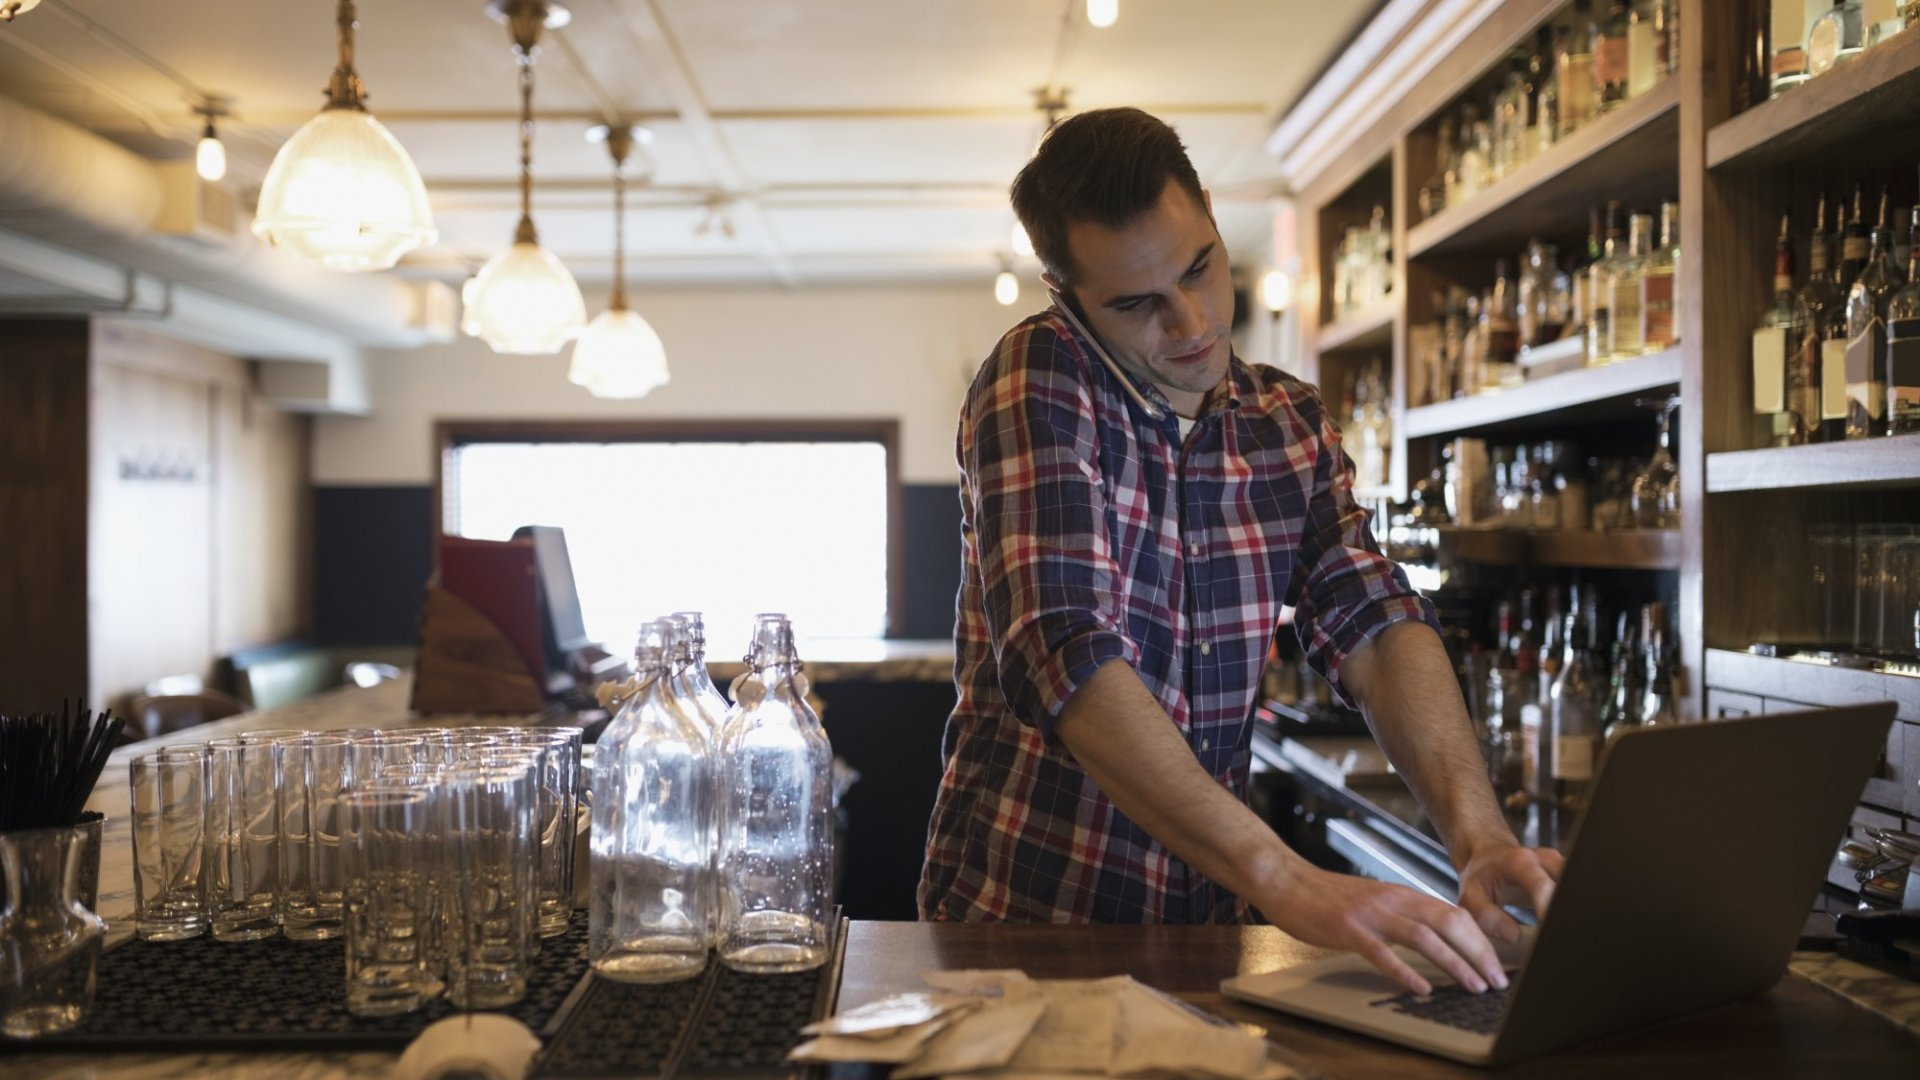 Are Millennial Business Owners Living Up to Generational Stereotypes?